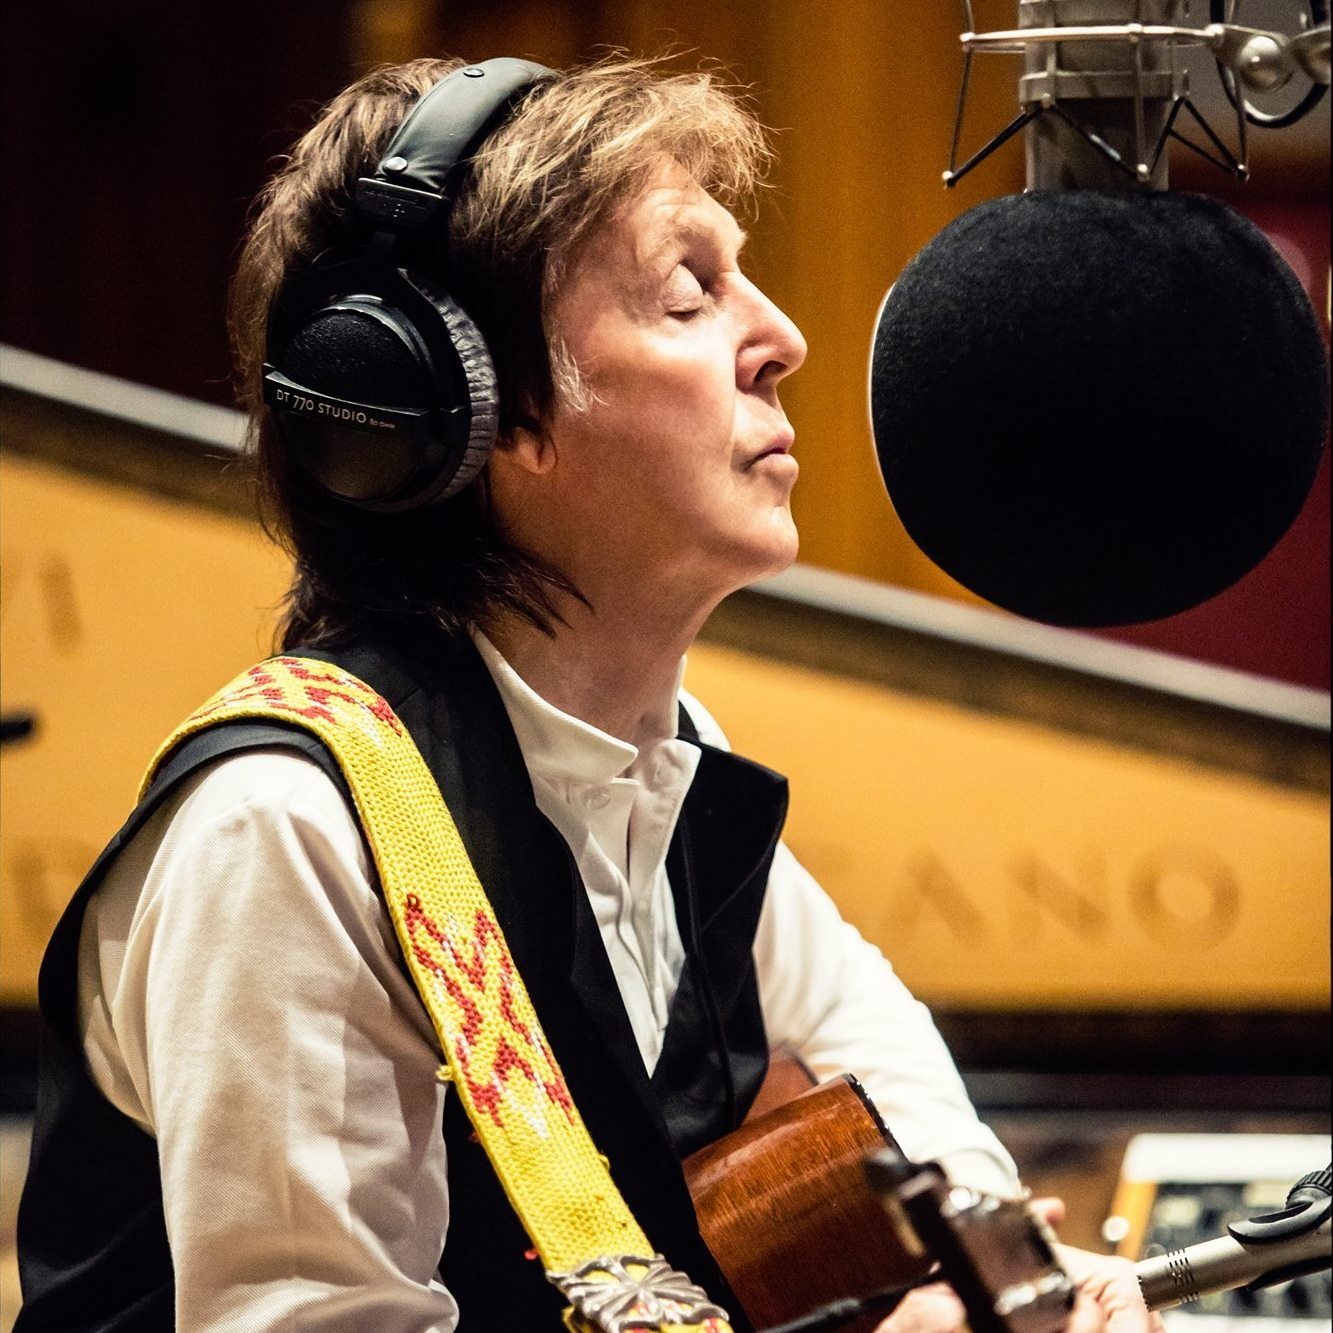 Paul McCartney's 'Egypt Station' Opens at #1 | Best Classic